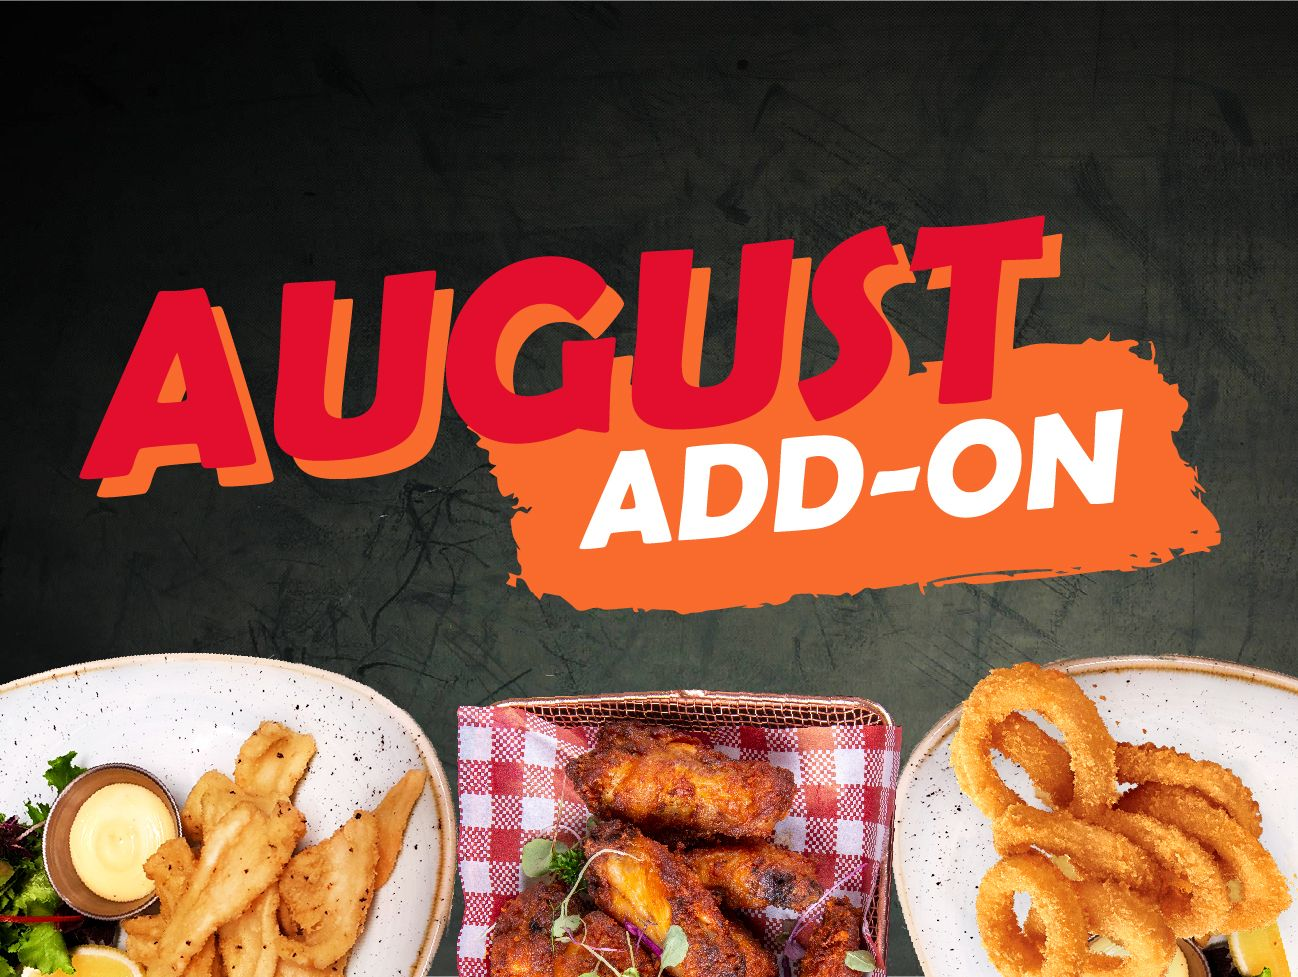 August Add-On